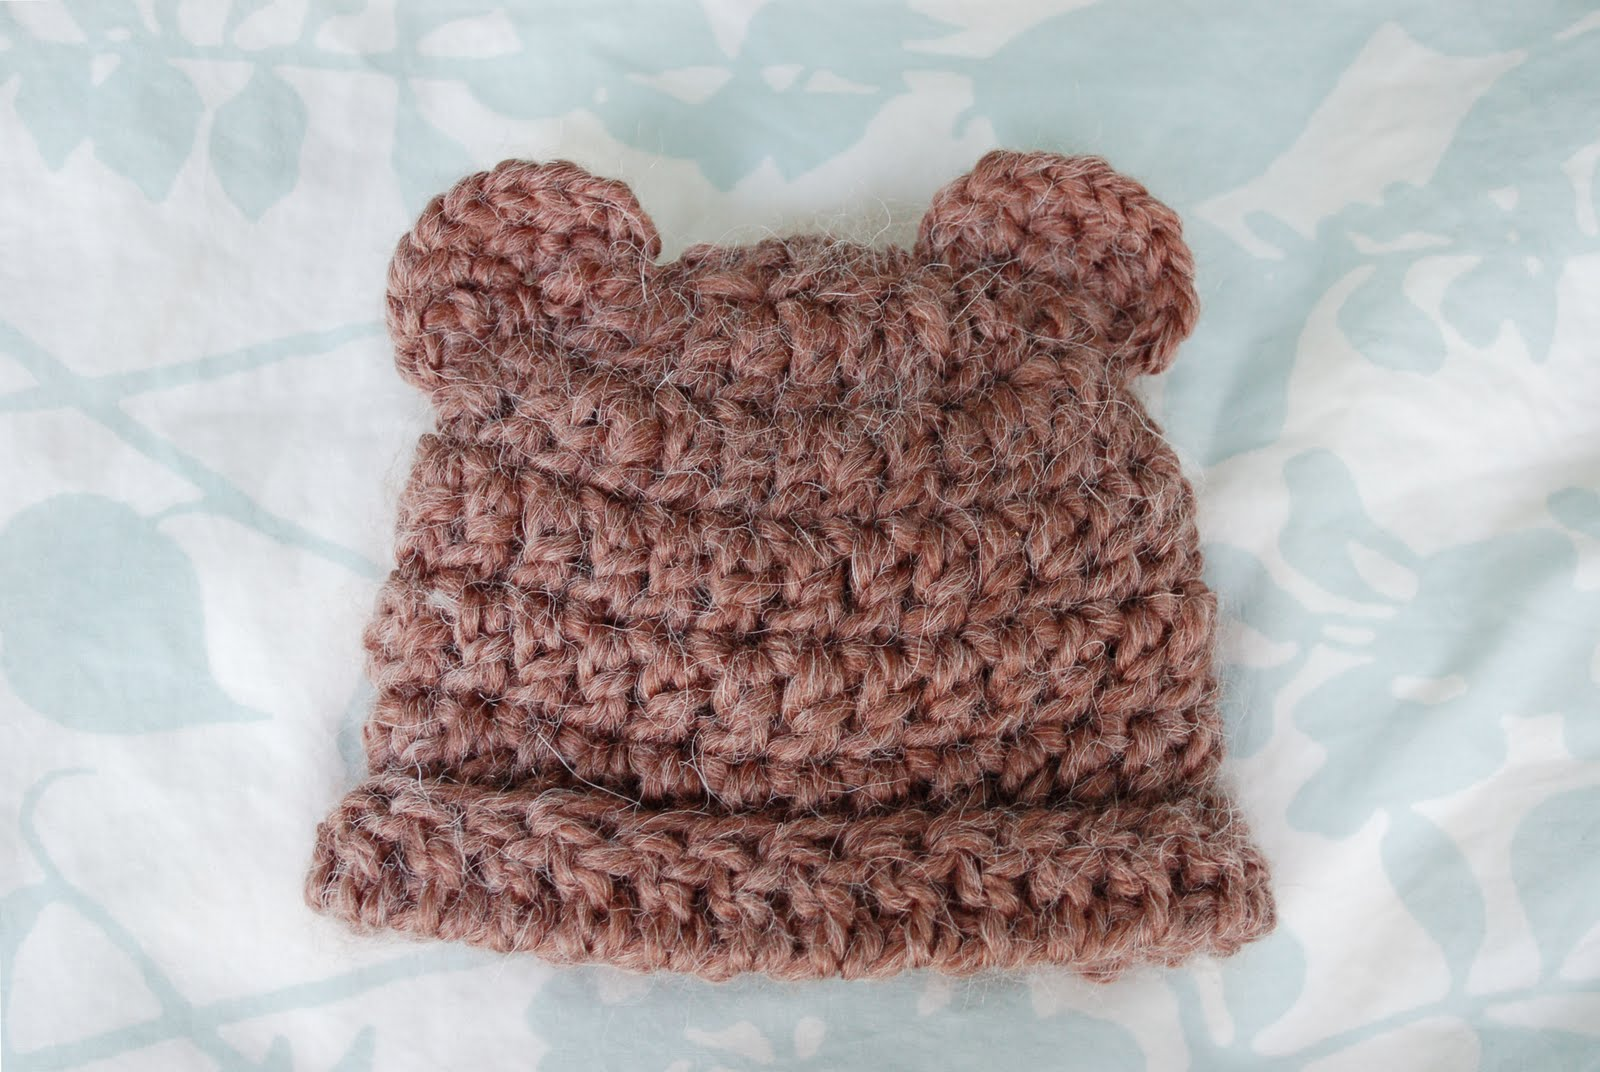 Crochet Baby Hat Bear Ears Pattern : Alli Crafts: Free Pattern: Fuzzy Bear Hat With Ears - 3 months